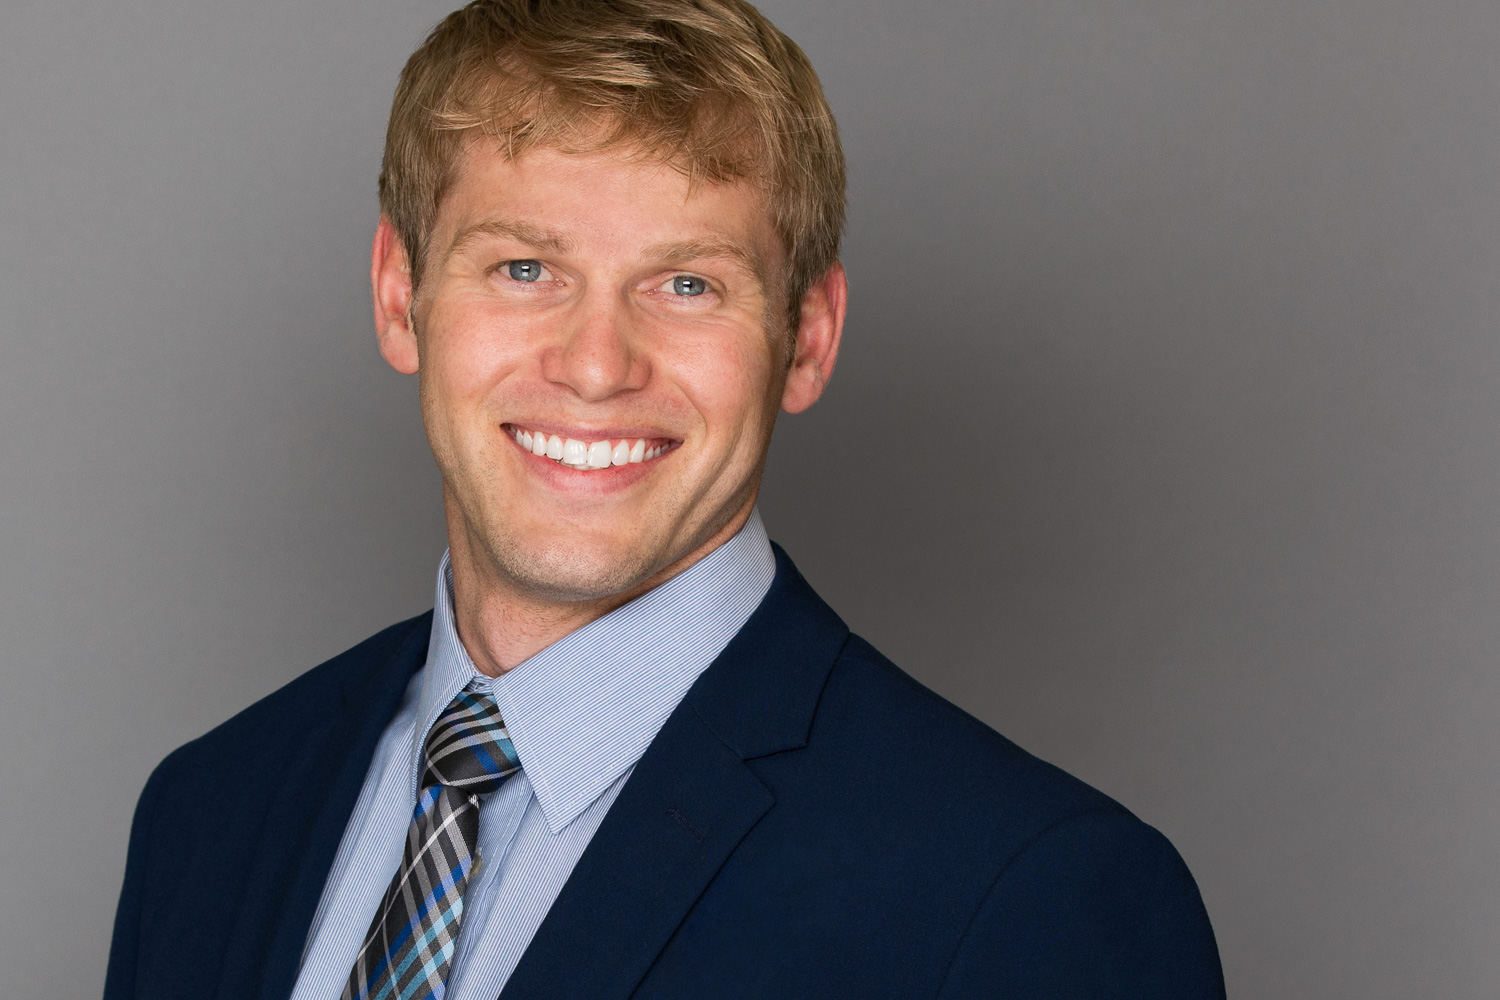 Olive Juice Studios - Rochester MN Headshot and Business Portraits -